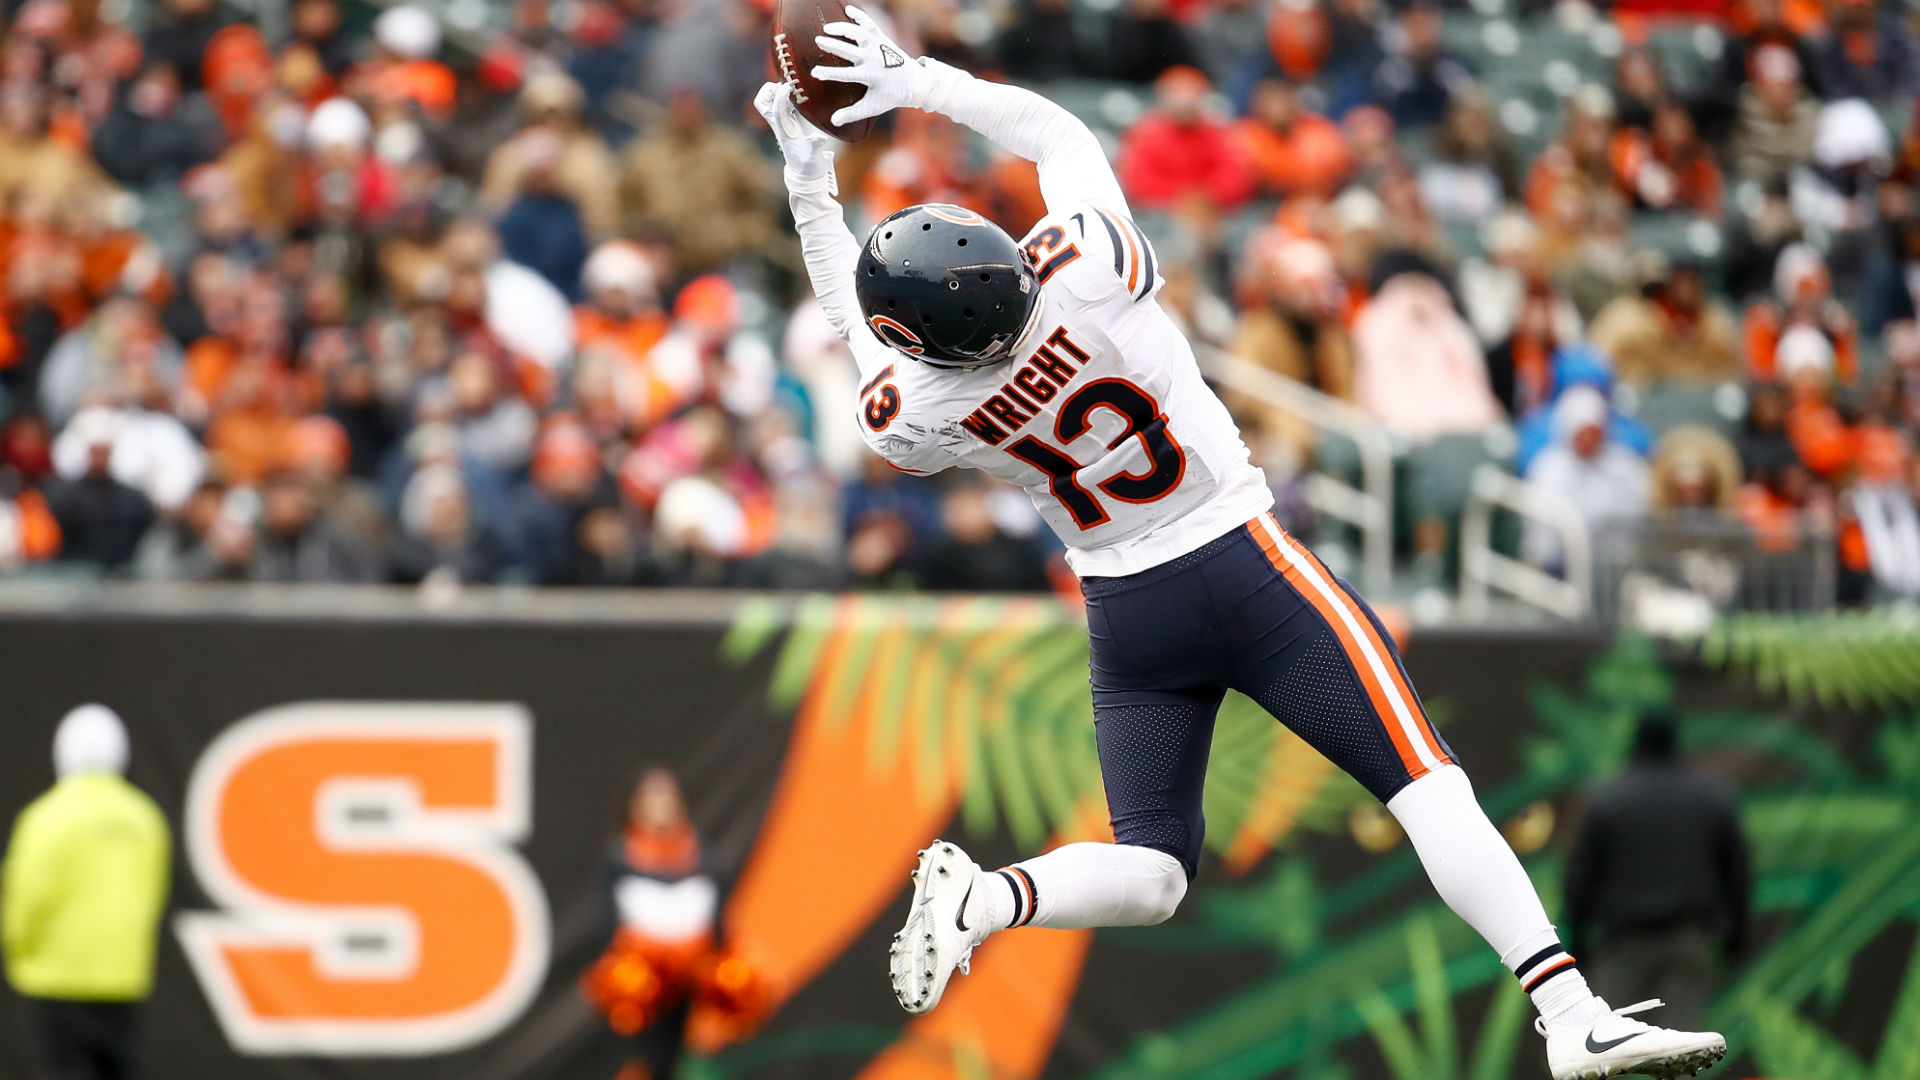 Vikings Sign Kendall Wright, Who Led Chicago Bears In Receiving